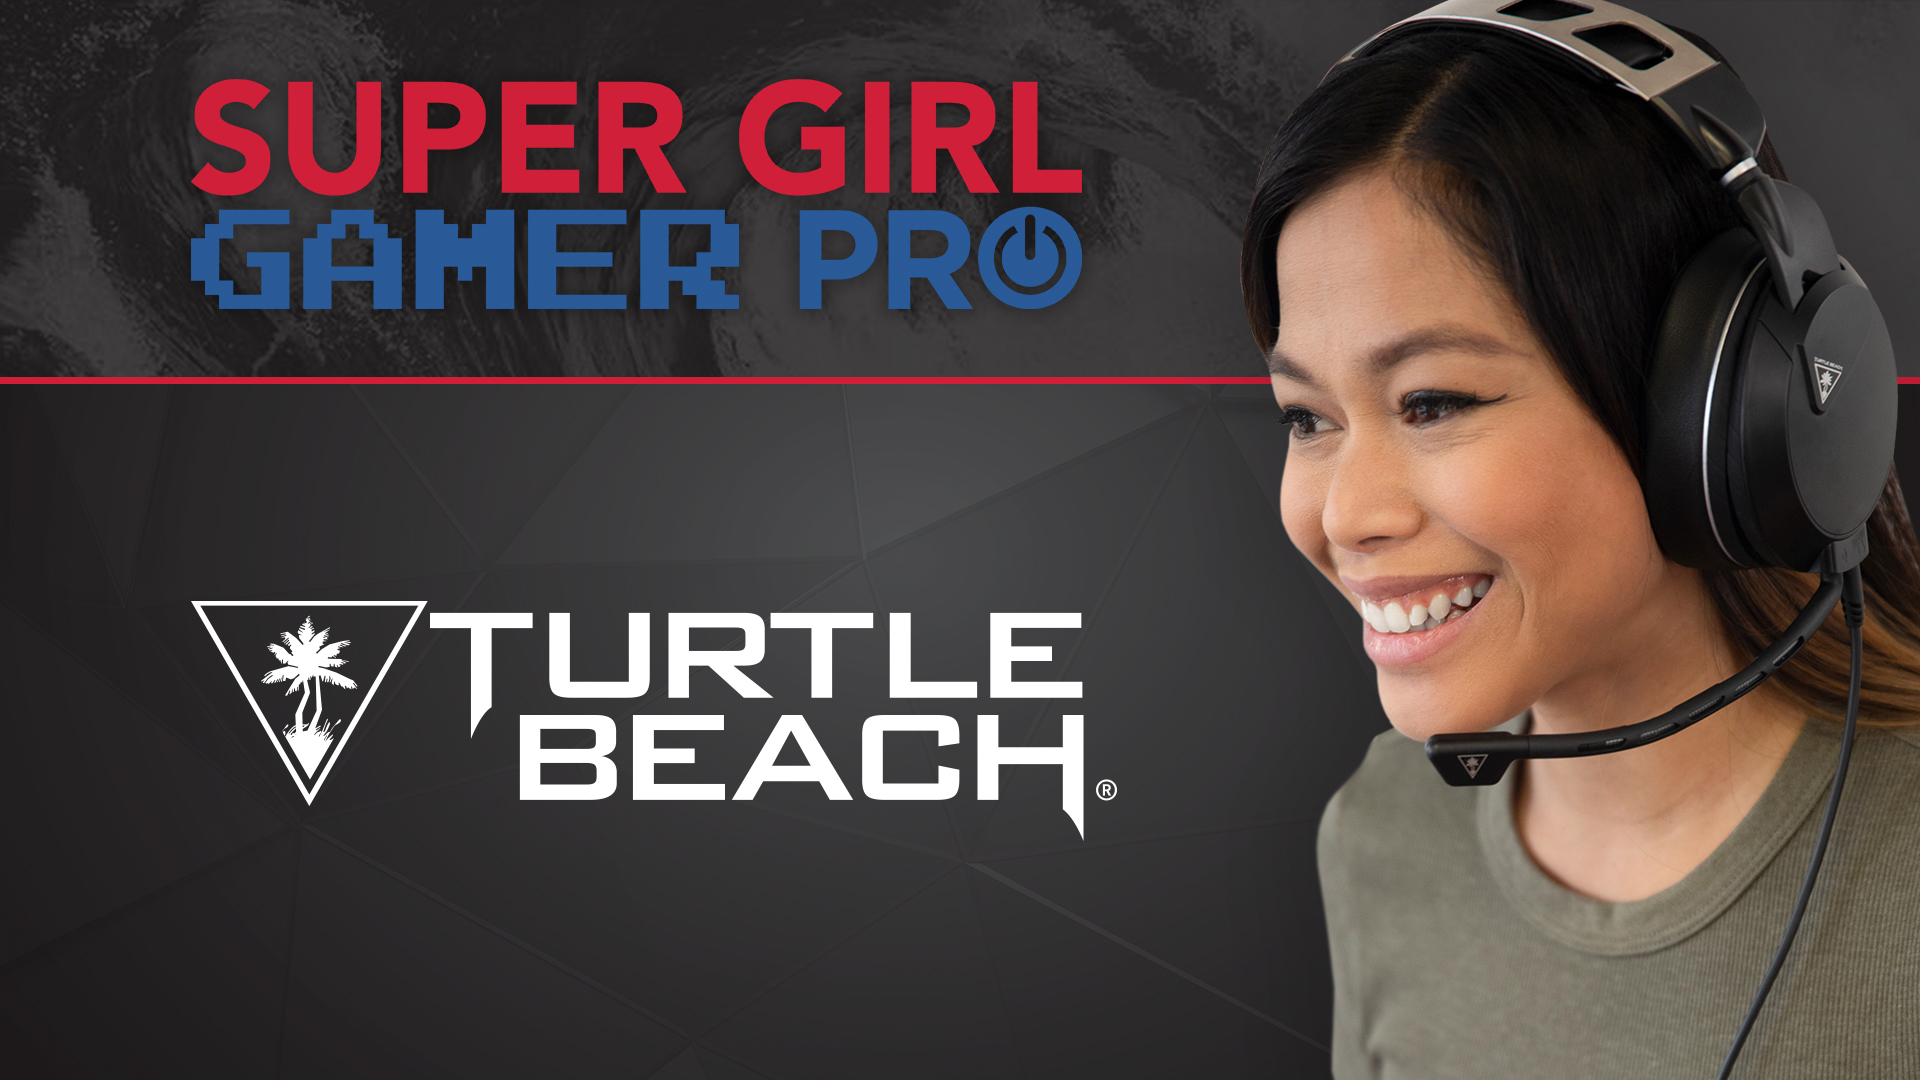 Turtle Beach Proudly Sponsors Super Girl Gamer Pro Esports Tournament